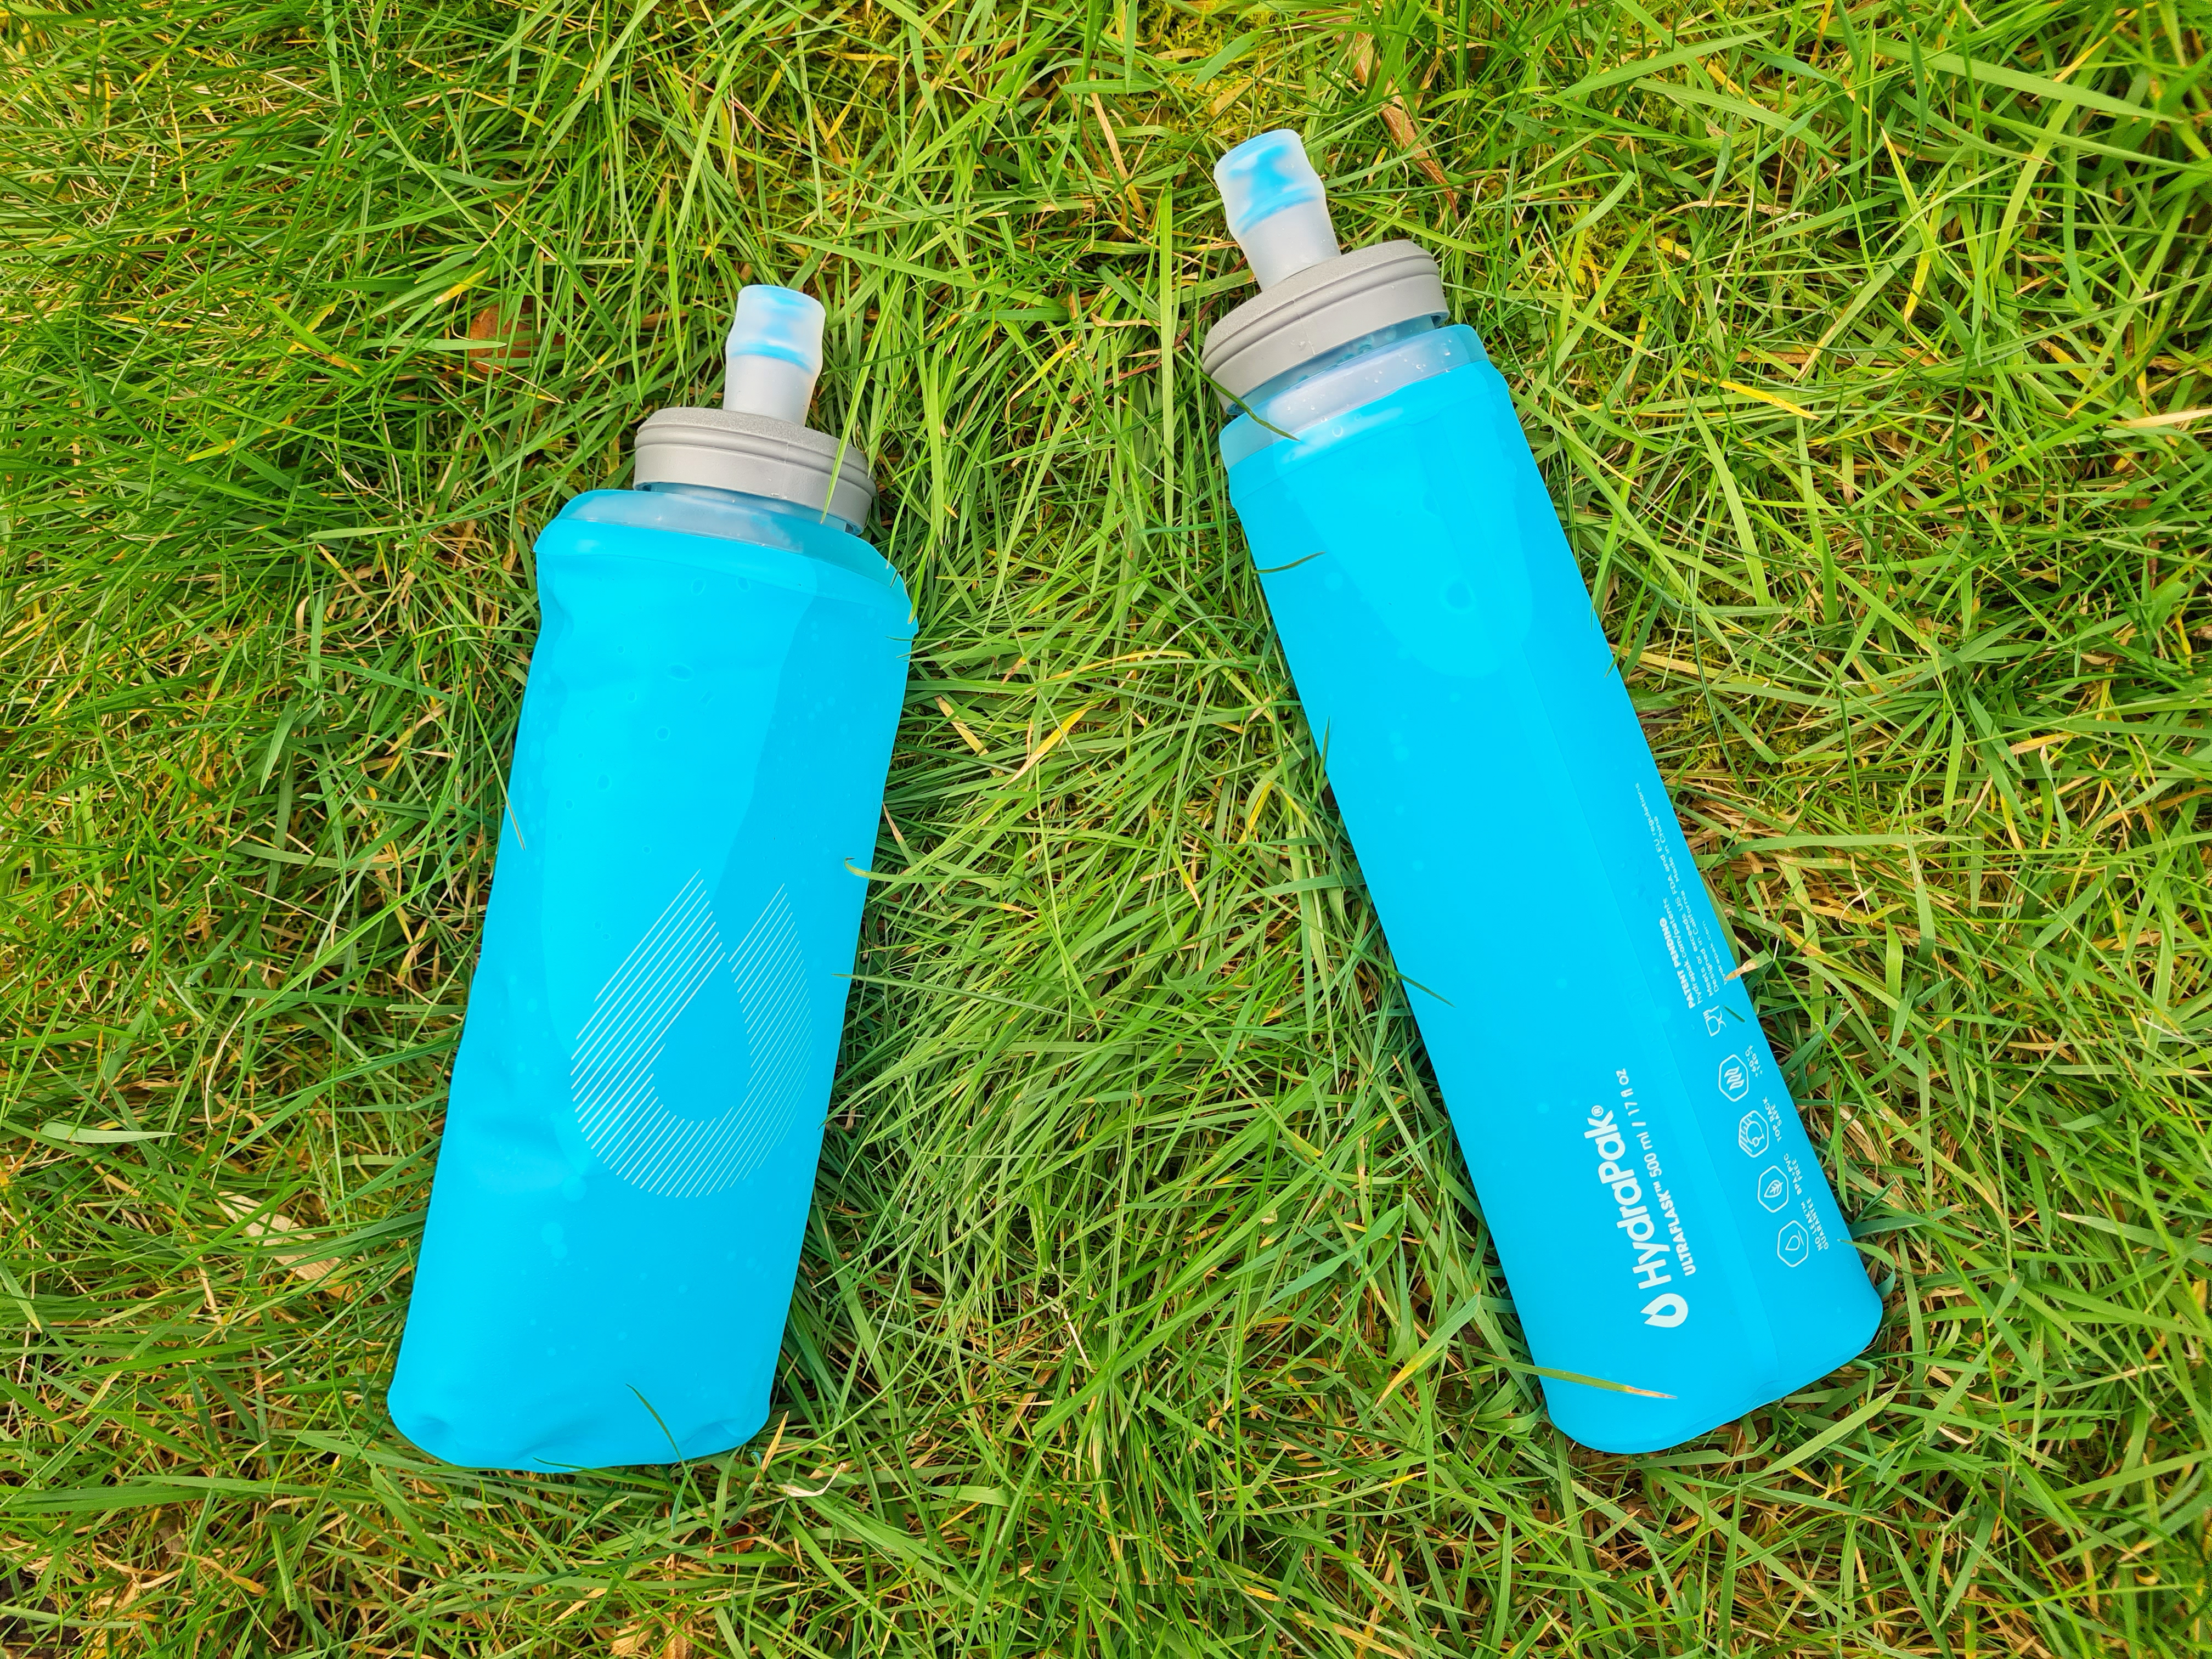 600ml and 500ml Ultraflasks from HydraPak